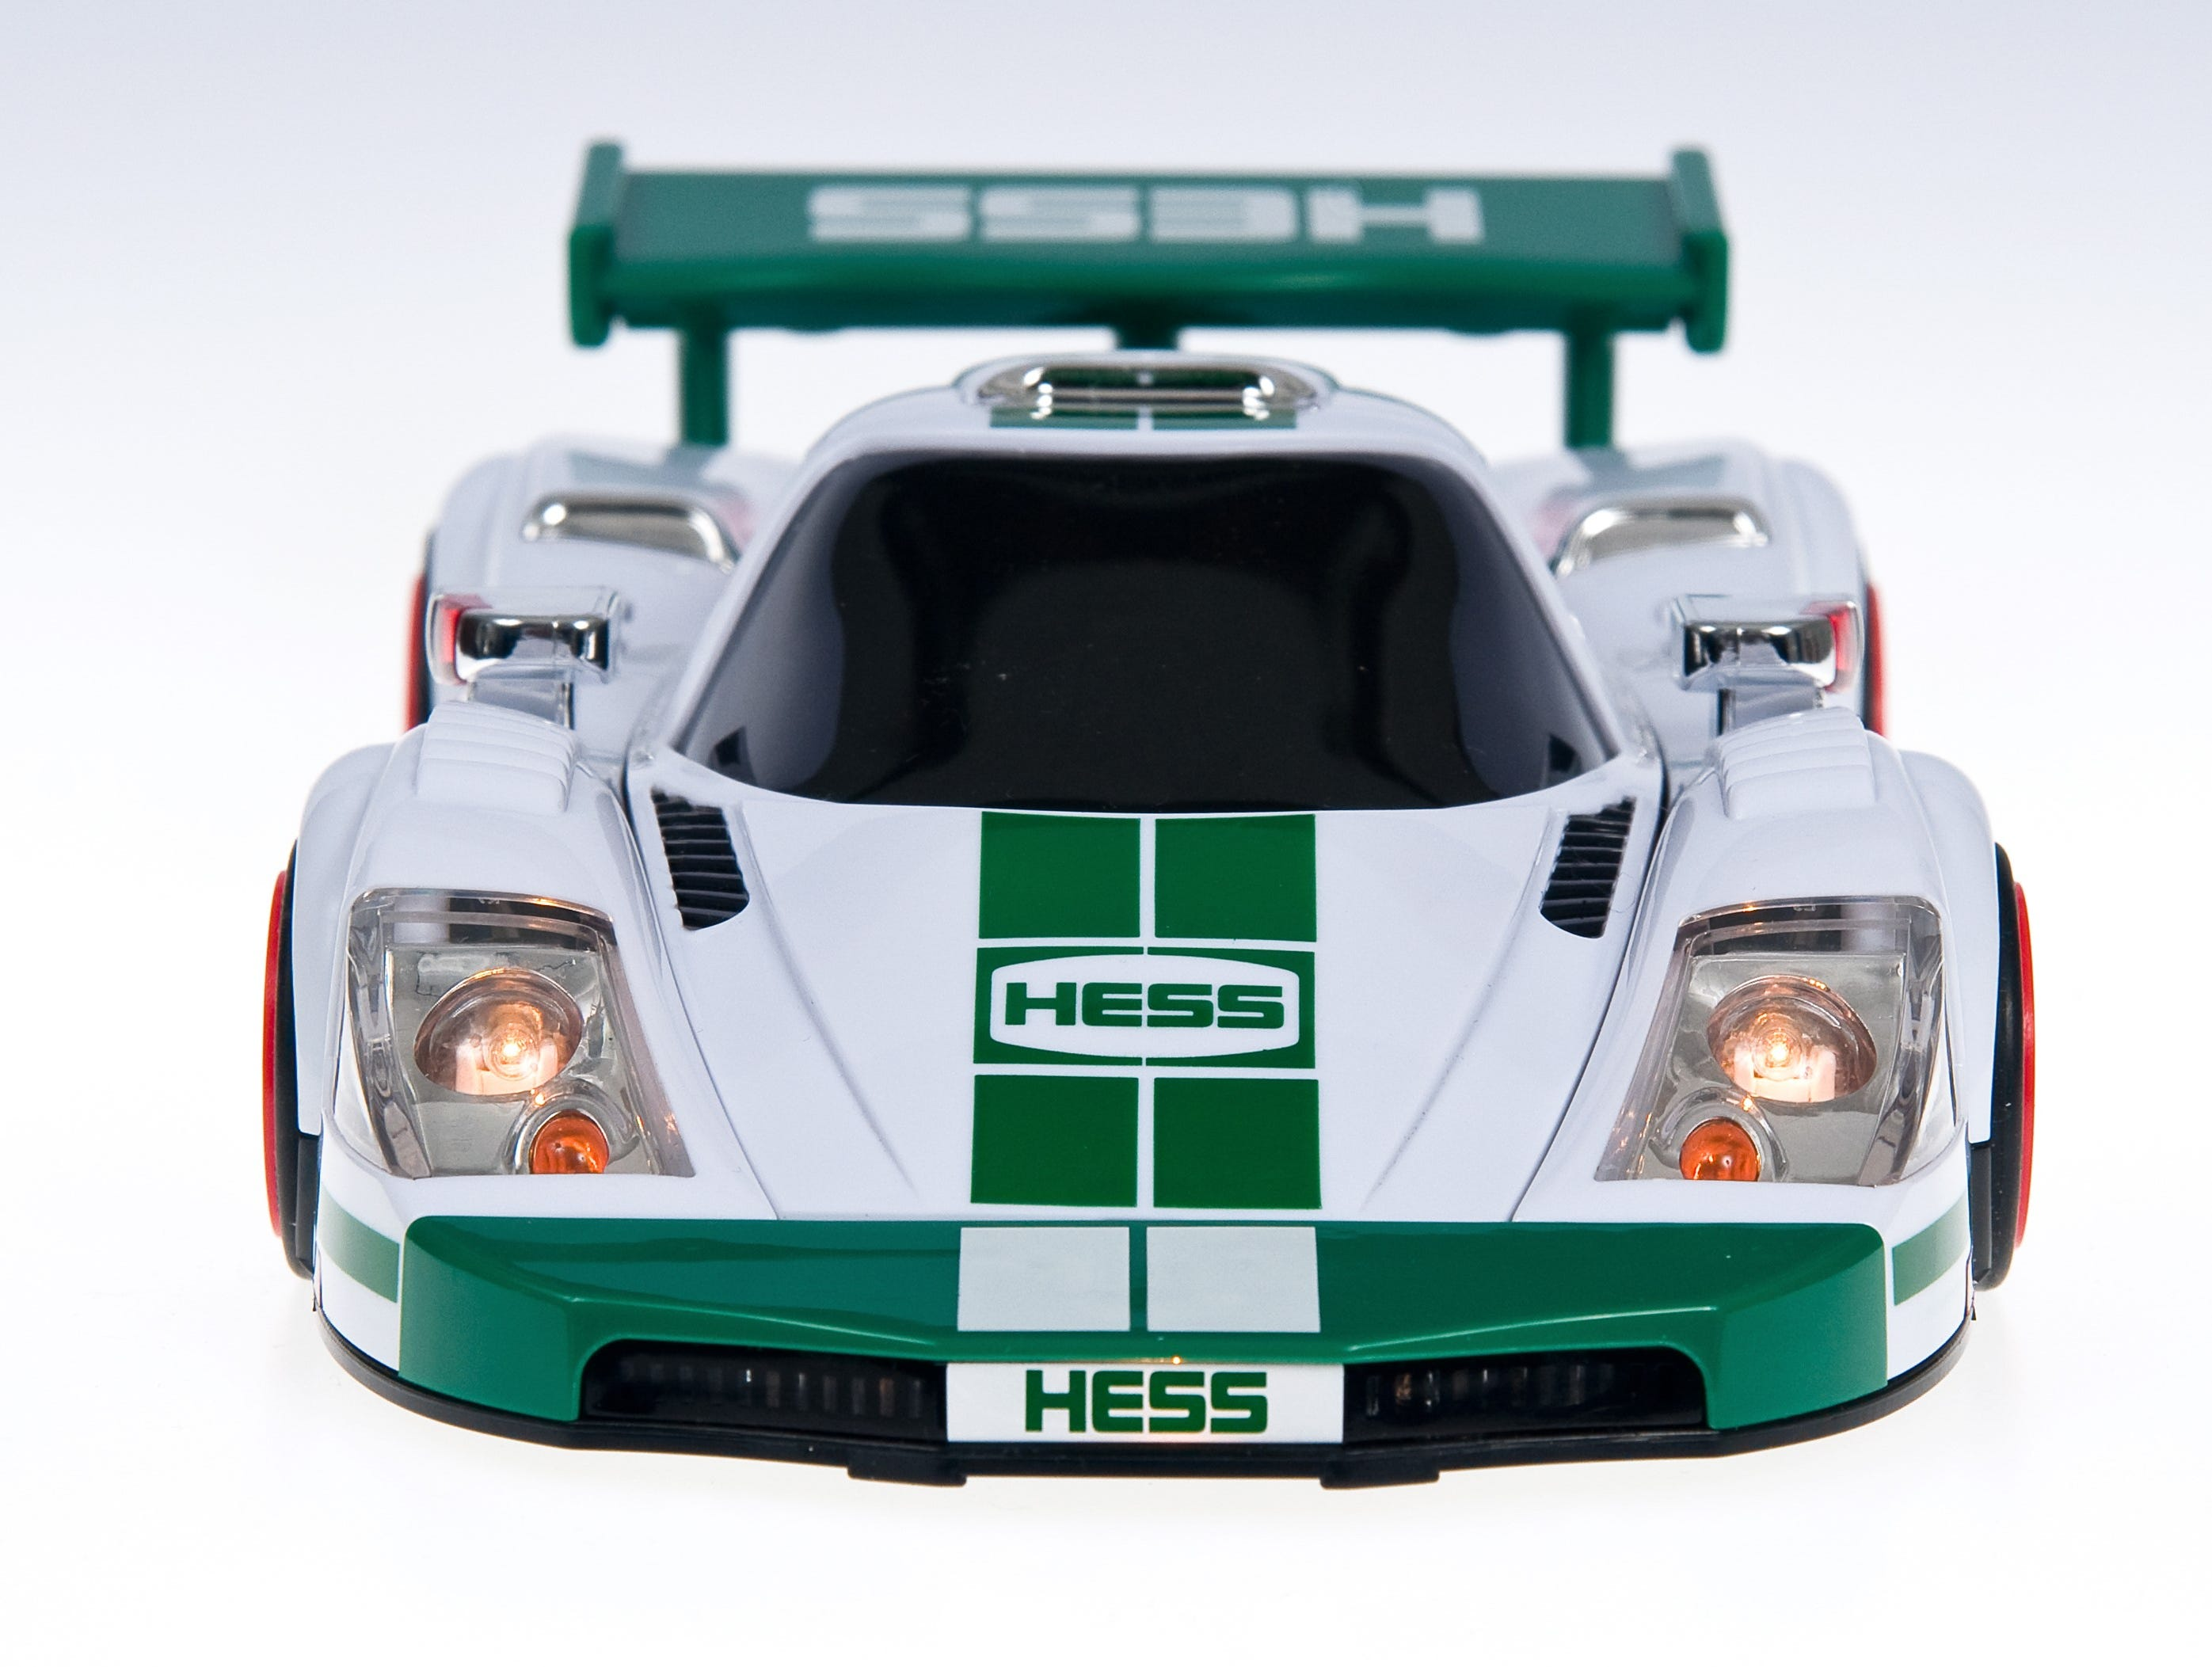 The 2009 Hess toy truck.